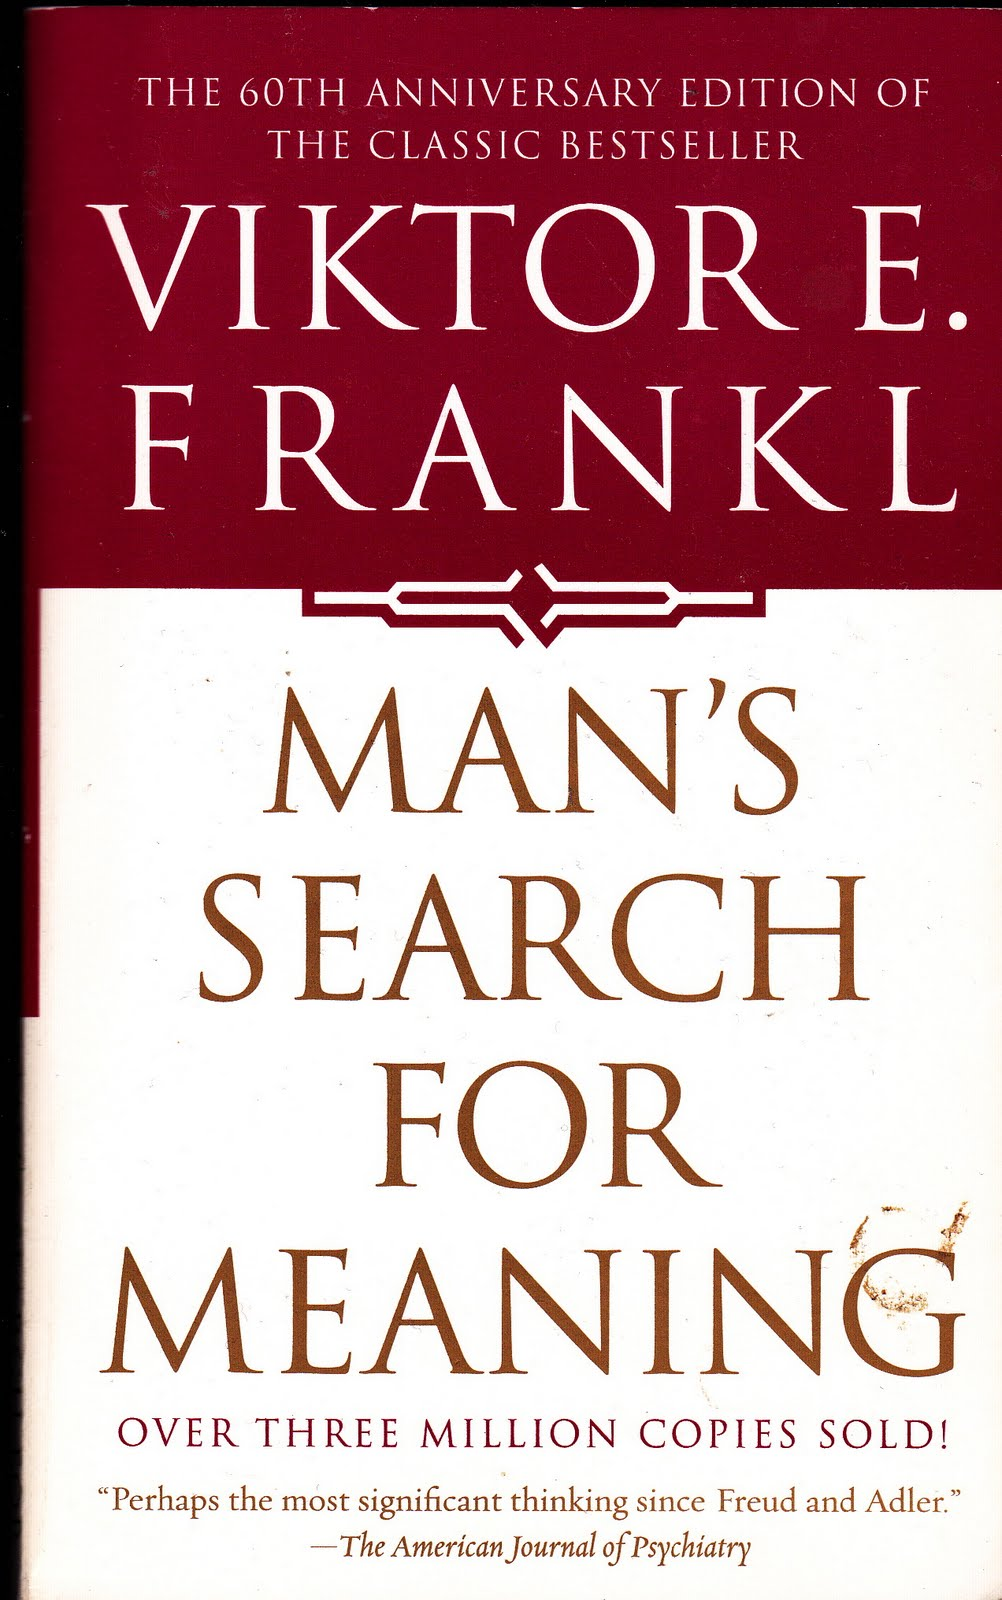 frankl mans search for meaning essay Frankl's background viktor frankl was an austrian neurologist and psychologist who founded what he called the field of logotherapy man's search for meaning, chronicles his experience in the camp as well as the development of logotherapy.